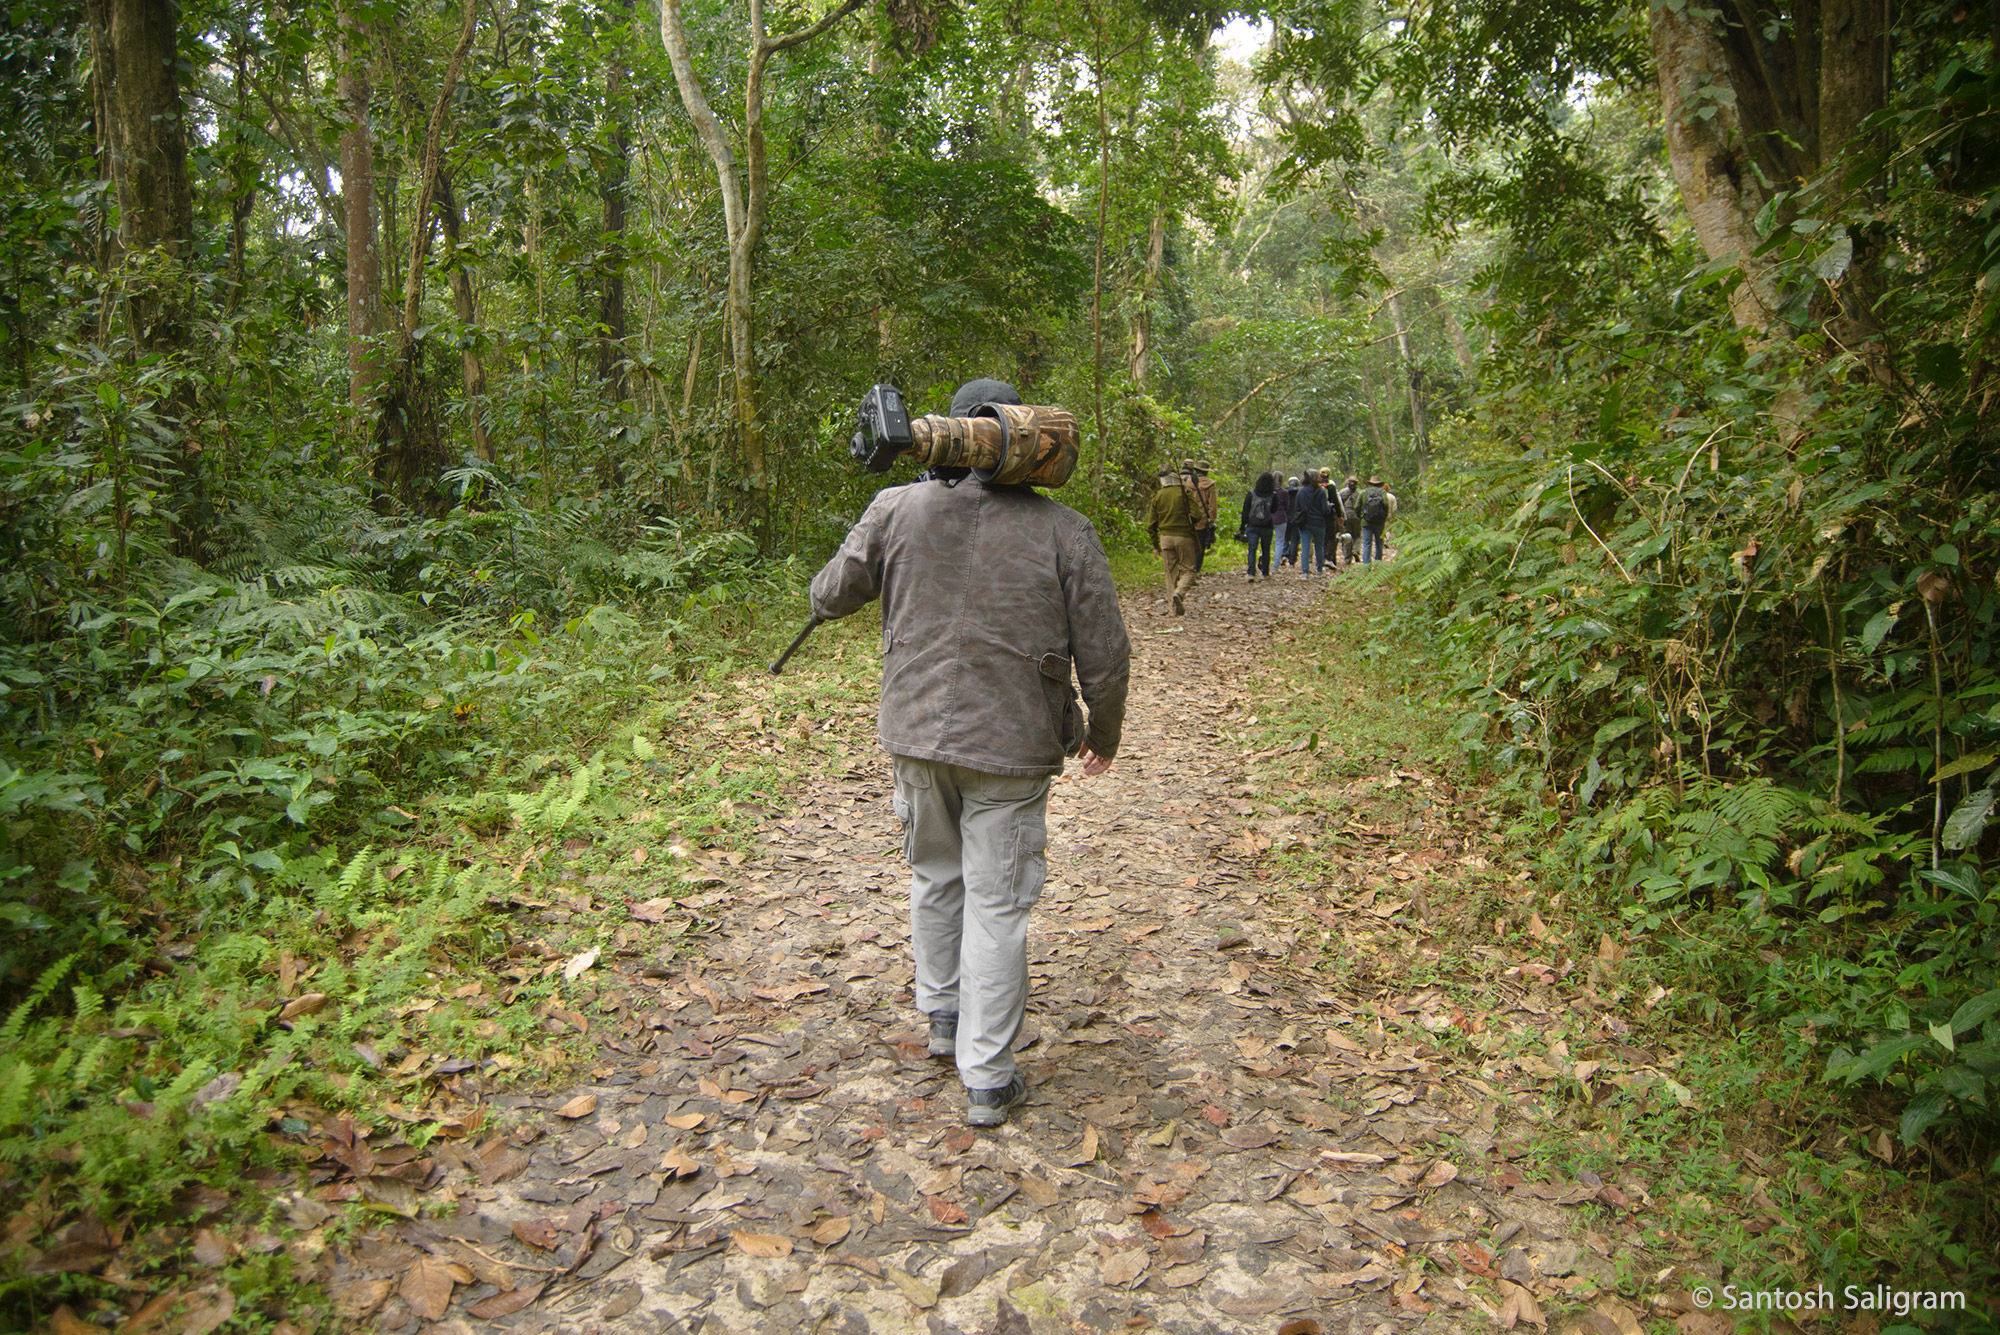 Walk in Gibbon Sanctuary